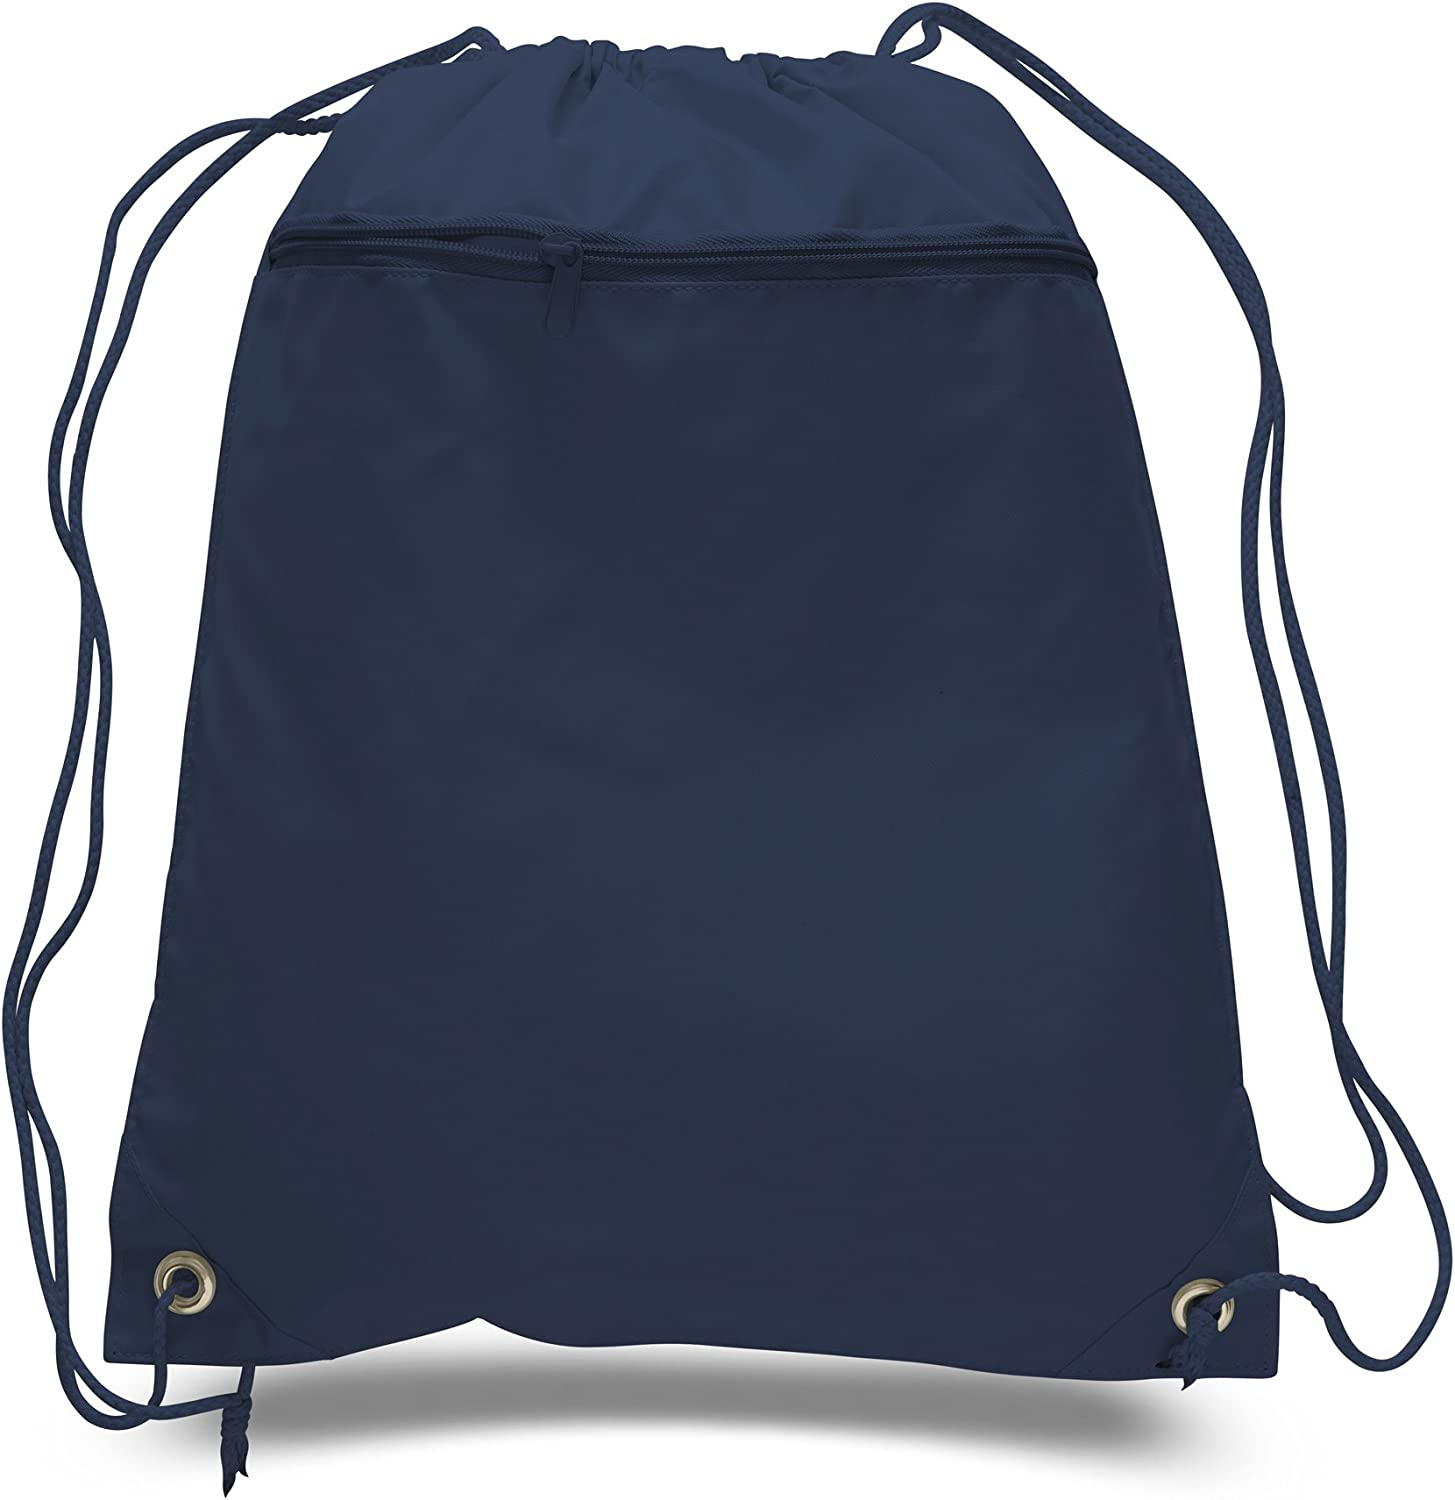 12 PACK - Promotional Well Made Polyester Drawstring Bags